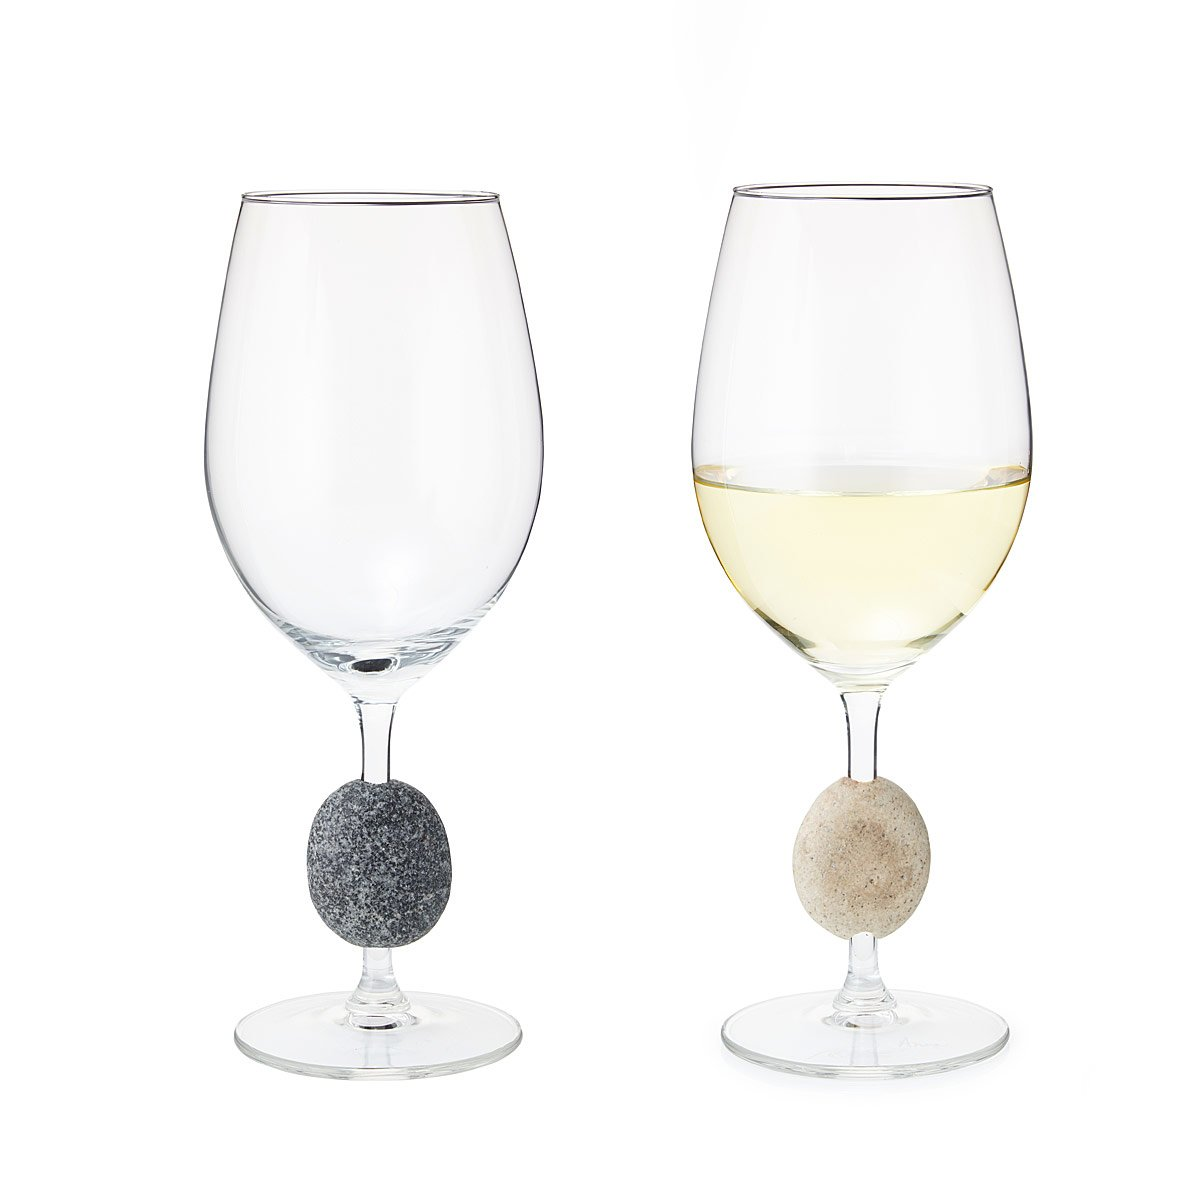 7 Deadly Sins Wine Glasses Sea Stone Wine Glasses Set Of 2 Rocks Stones Wines Glass